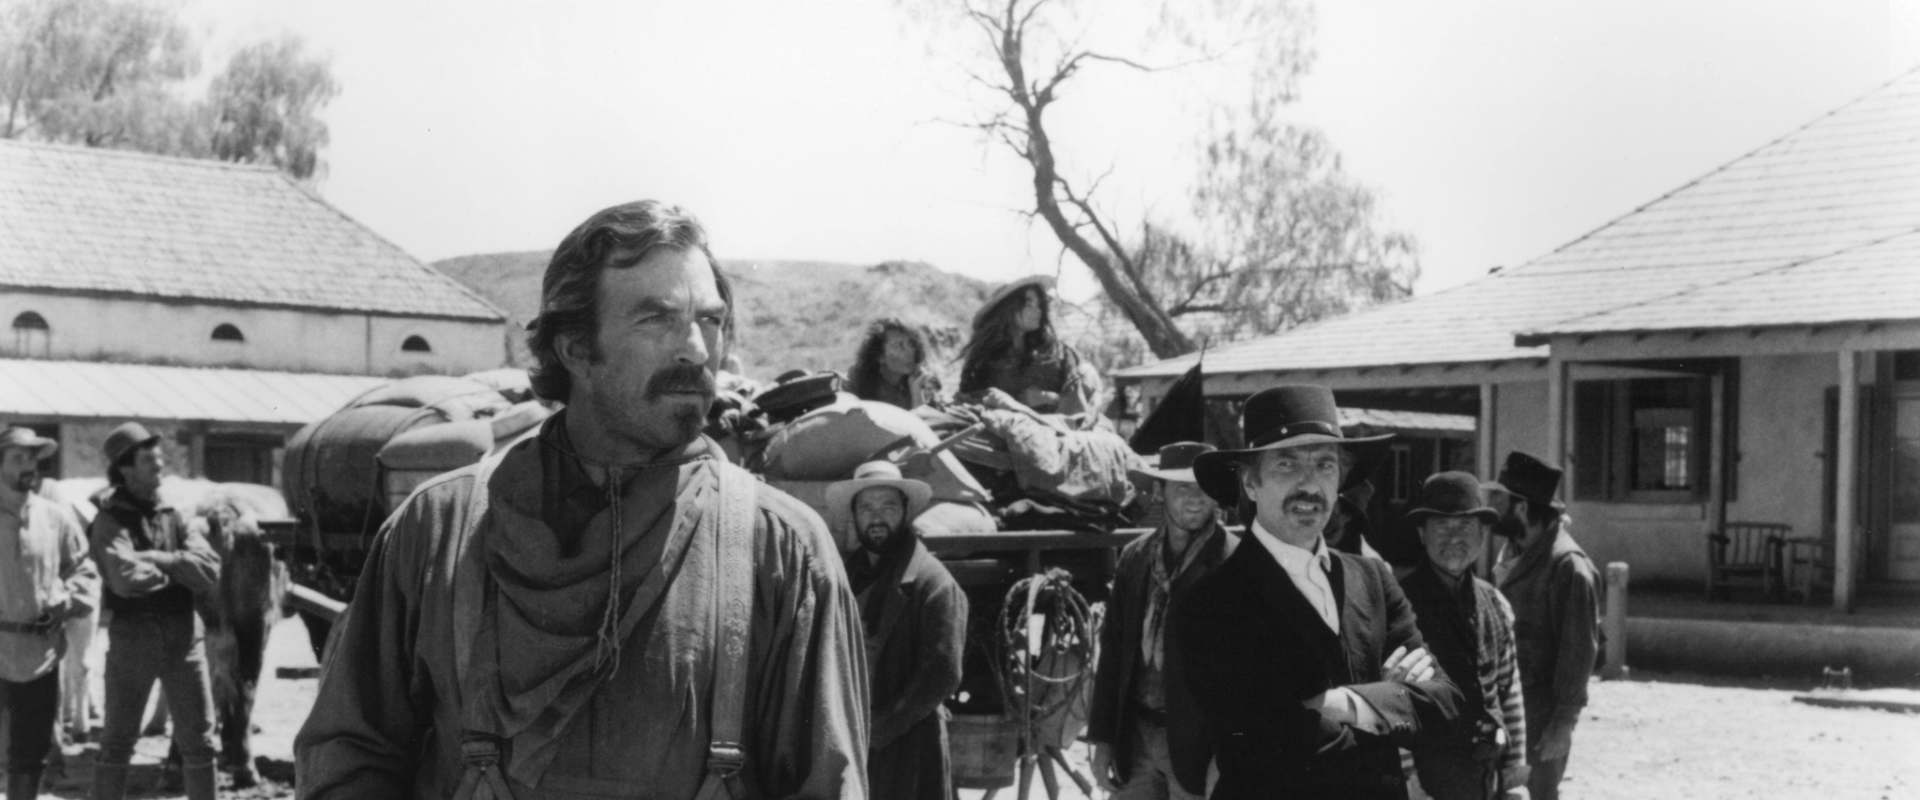 Quigley Down Under background 2